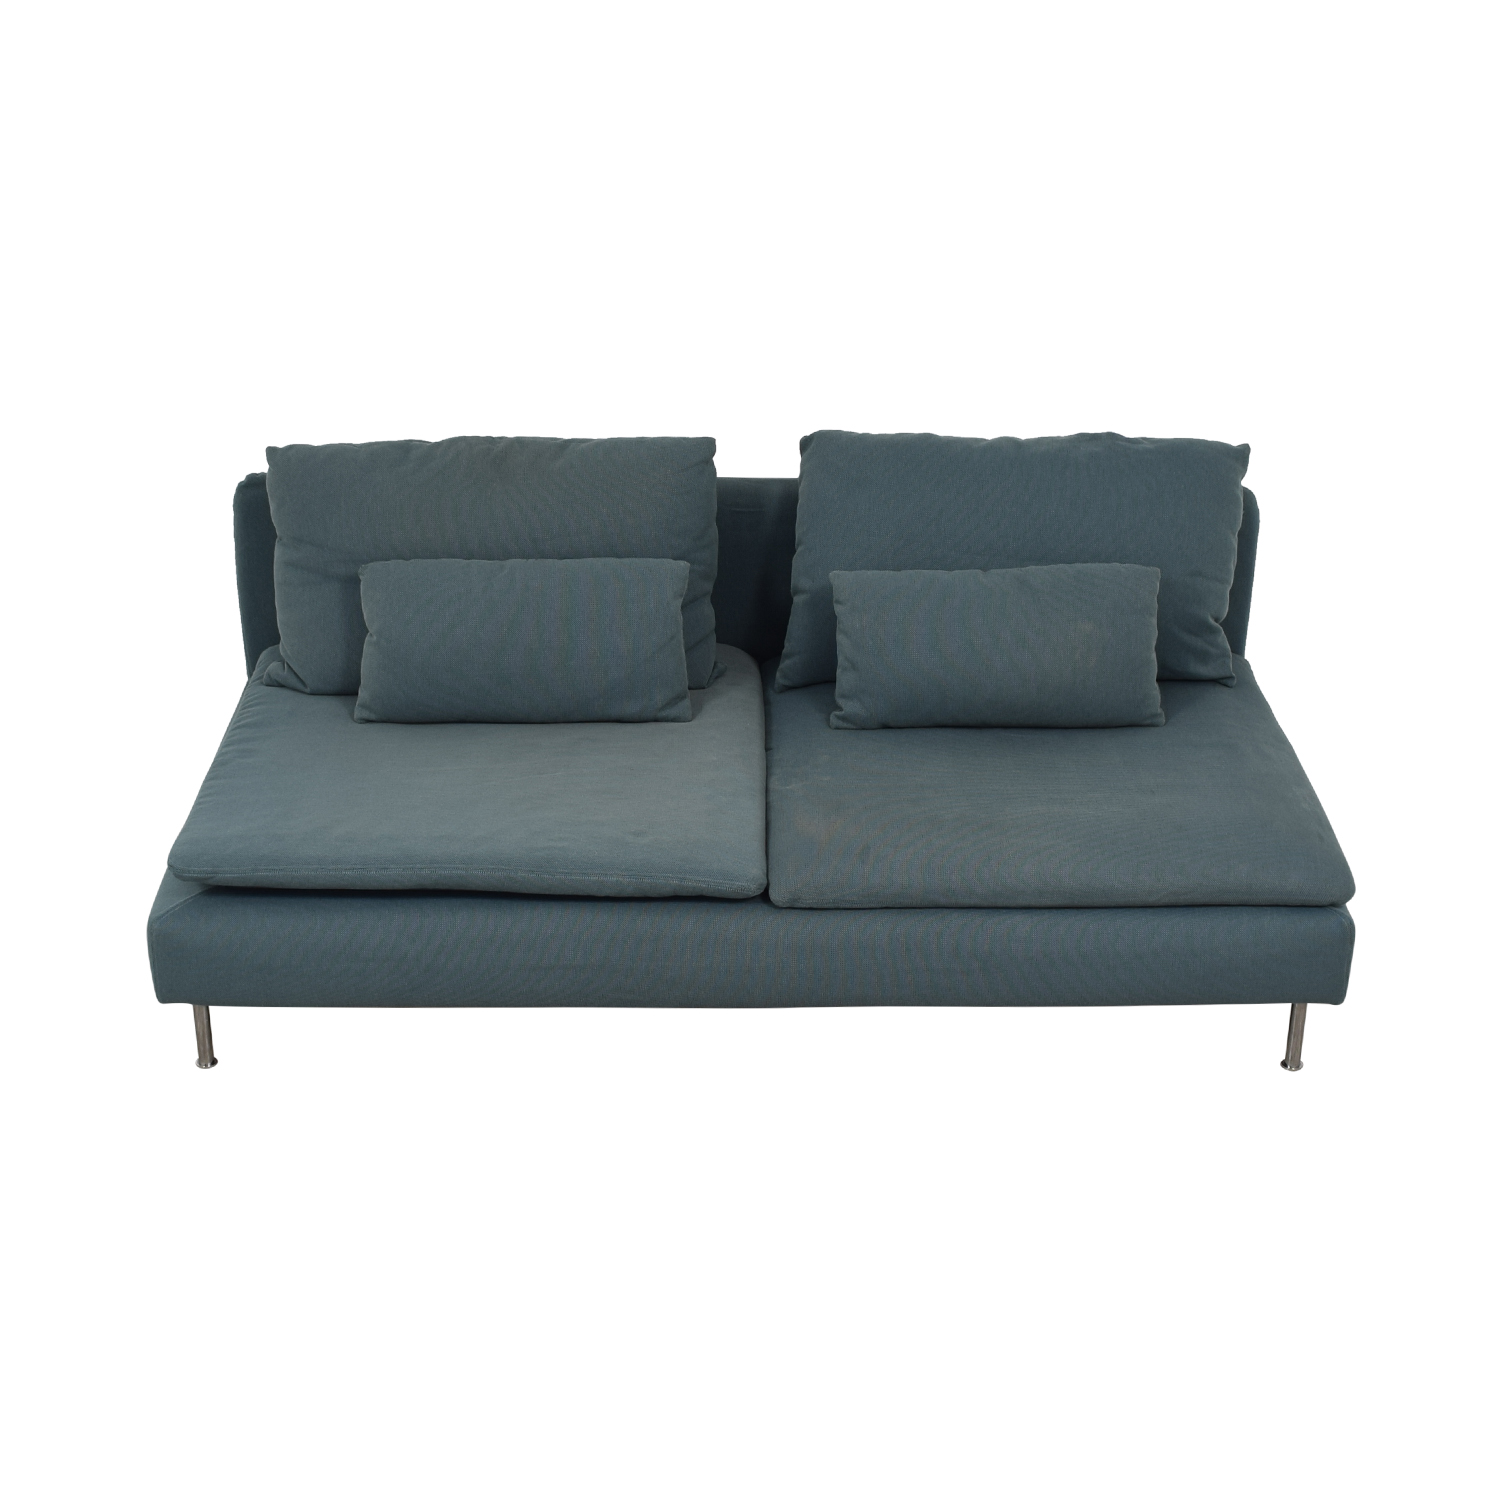 IKEA Grey Green Two-Cushion Armless Couch / Sofas